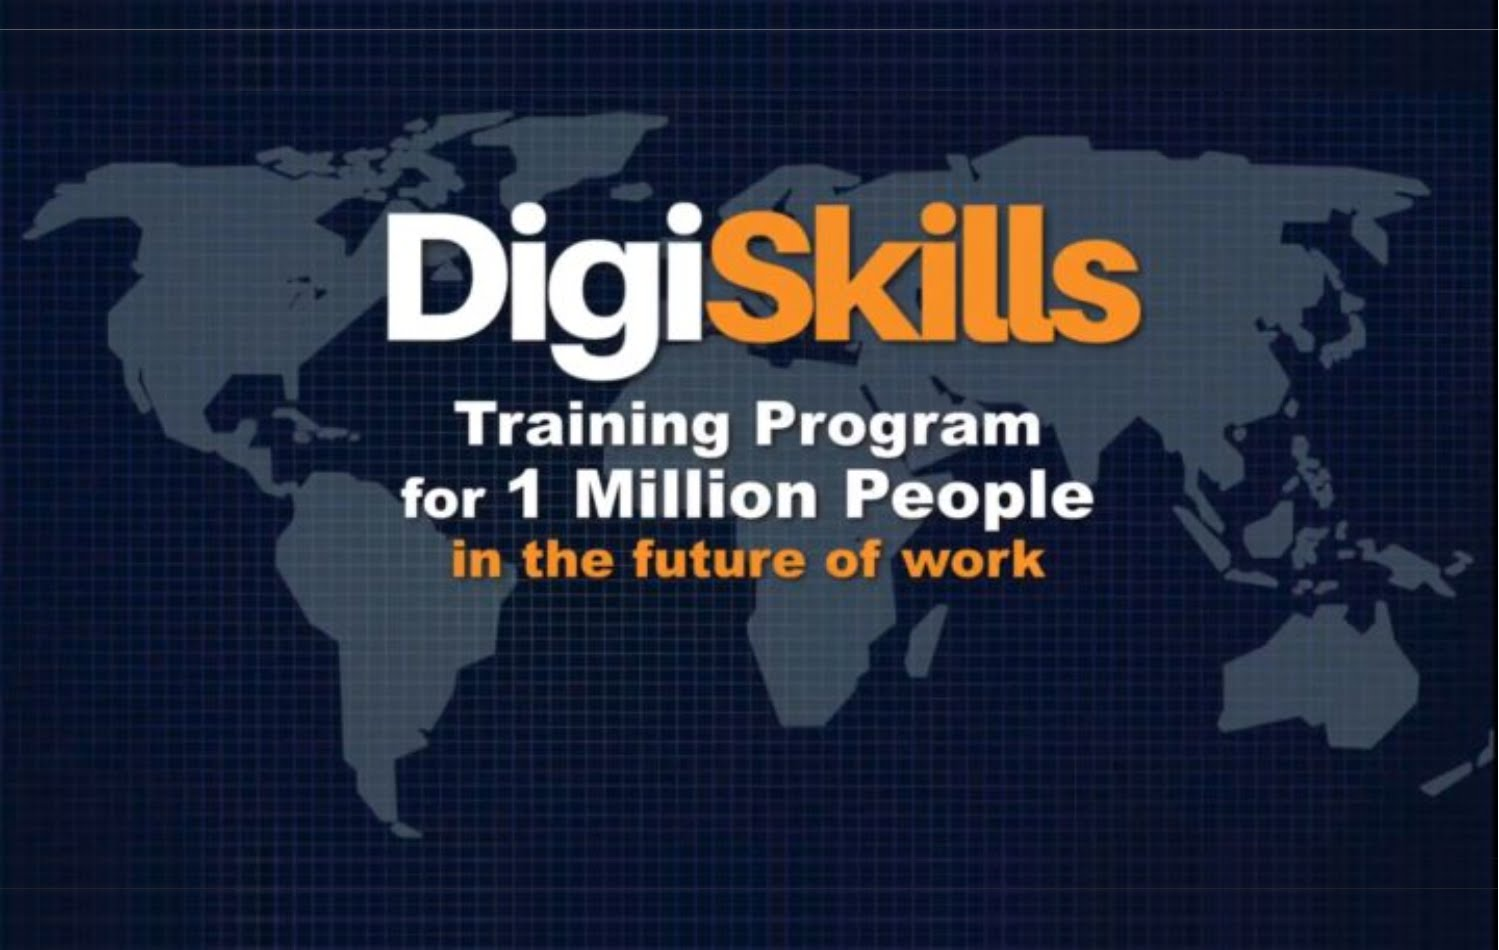 Digiskills training program for 1 million people in the future of work